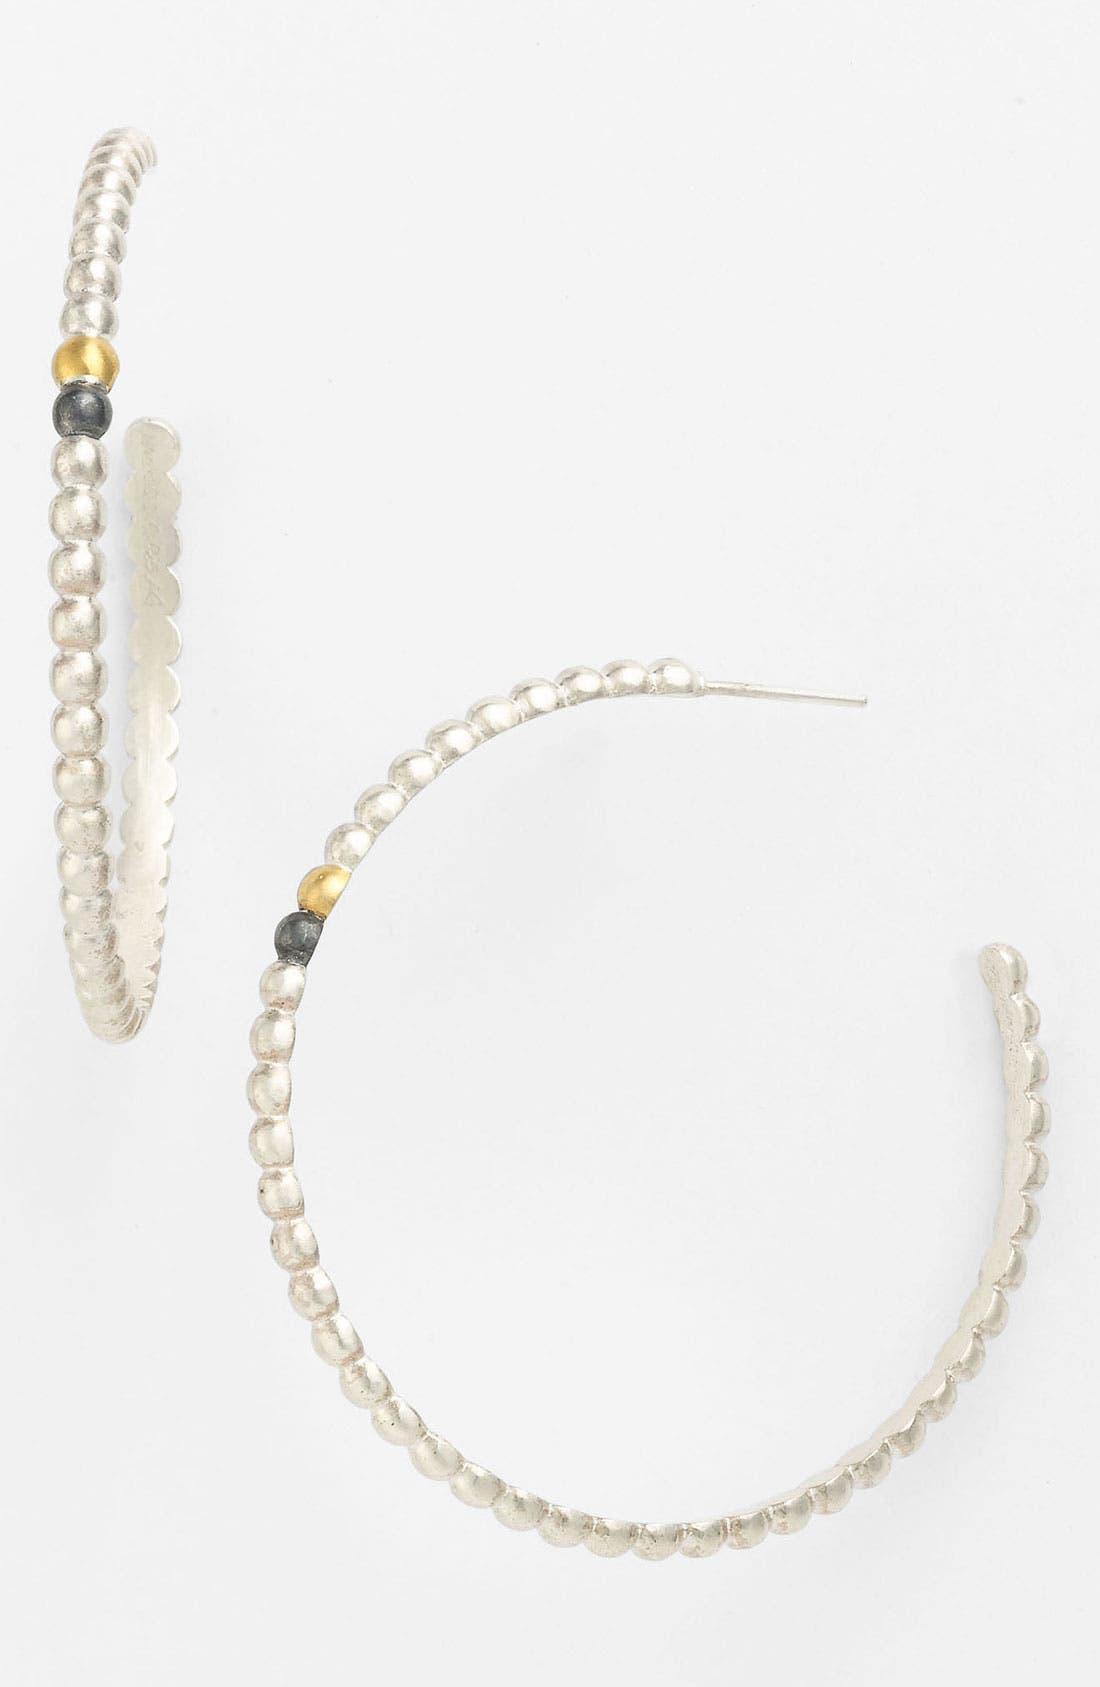 Main Image - Gurhan 'Couscous' Large Hoop Earrings